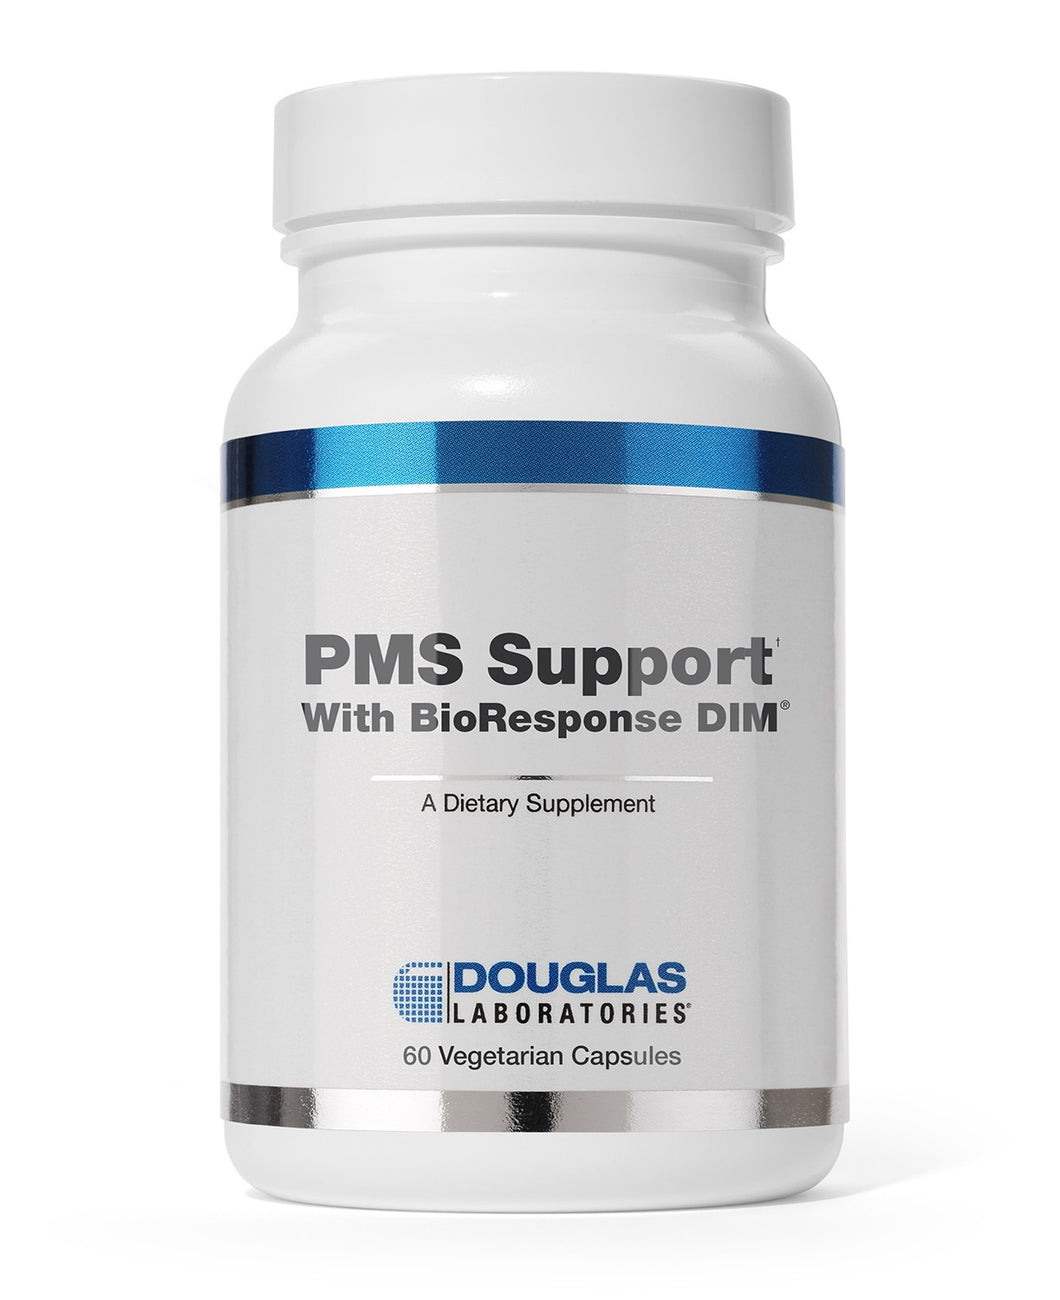 PMS Support† with BioResponse DIM-60 Veg Caps-Douglas Labs